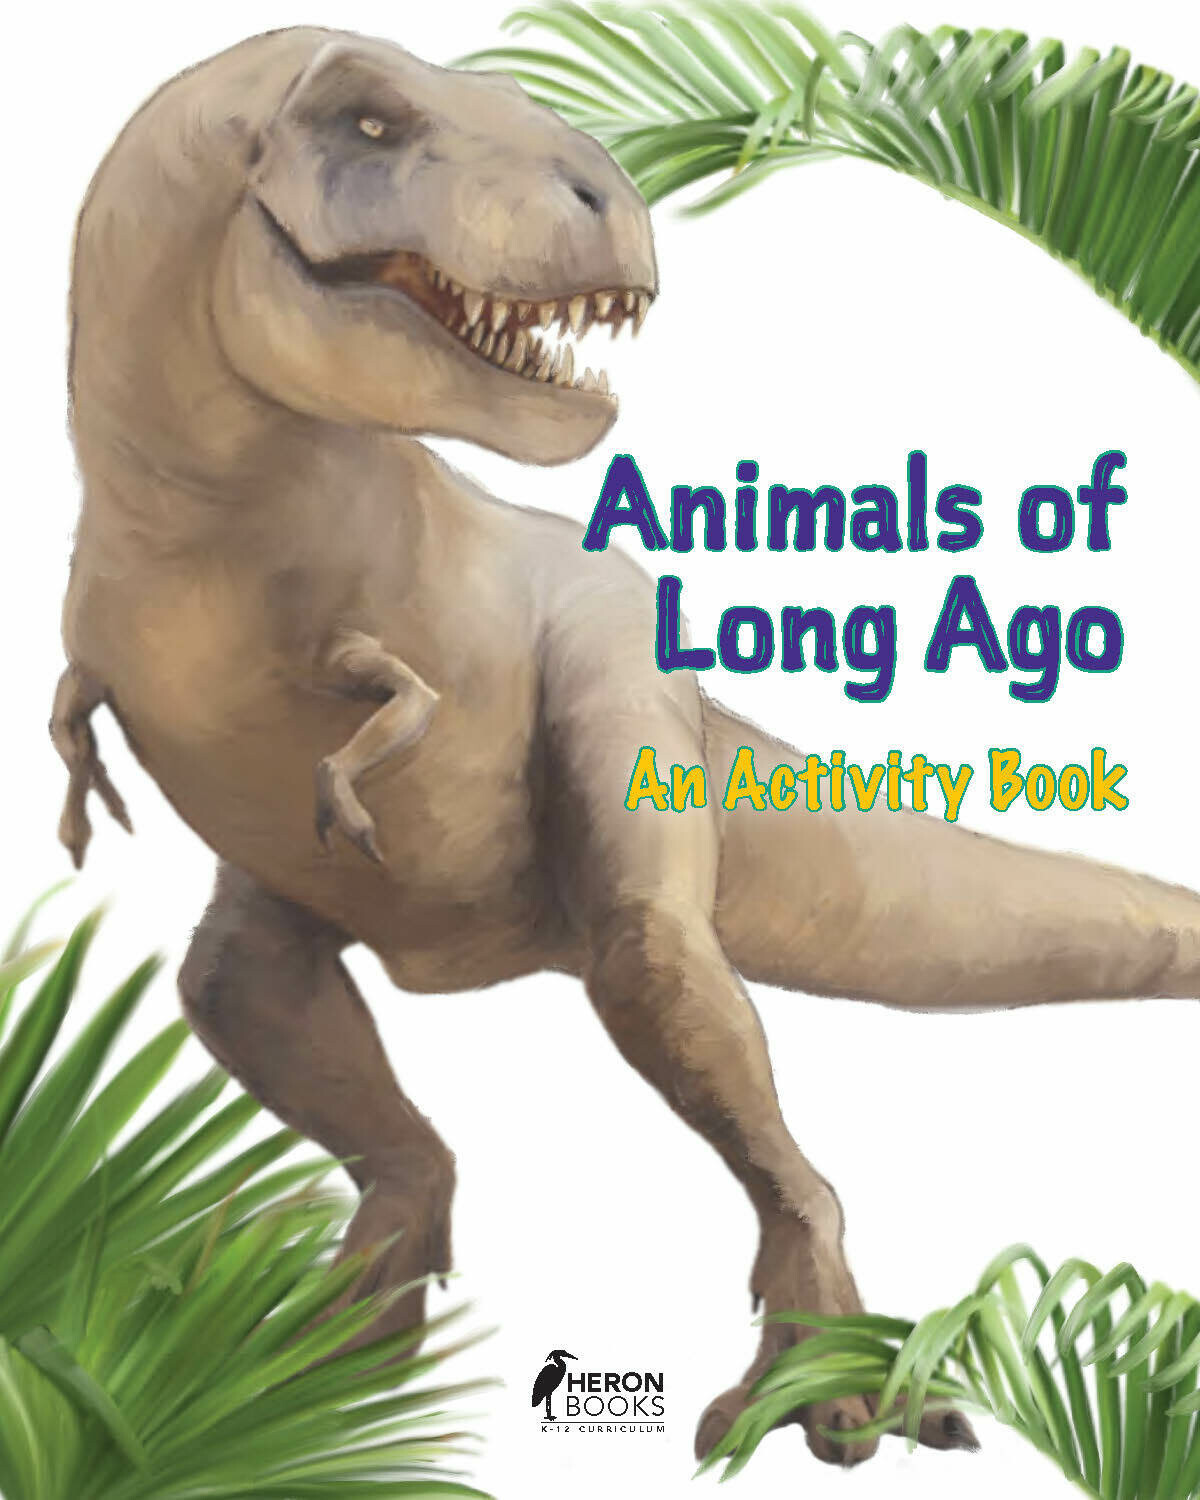 Animals of Long Ago An Activity Book - Free Download!